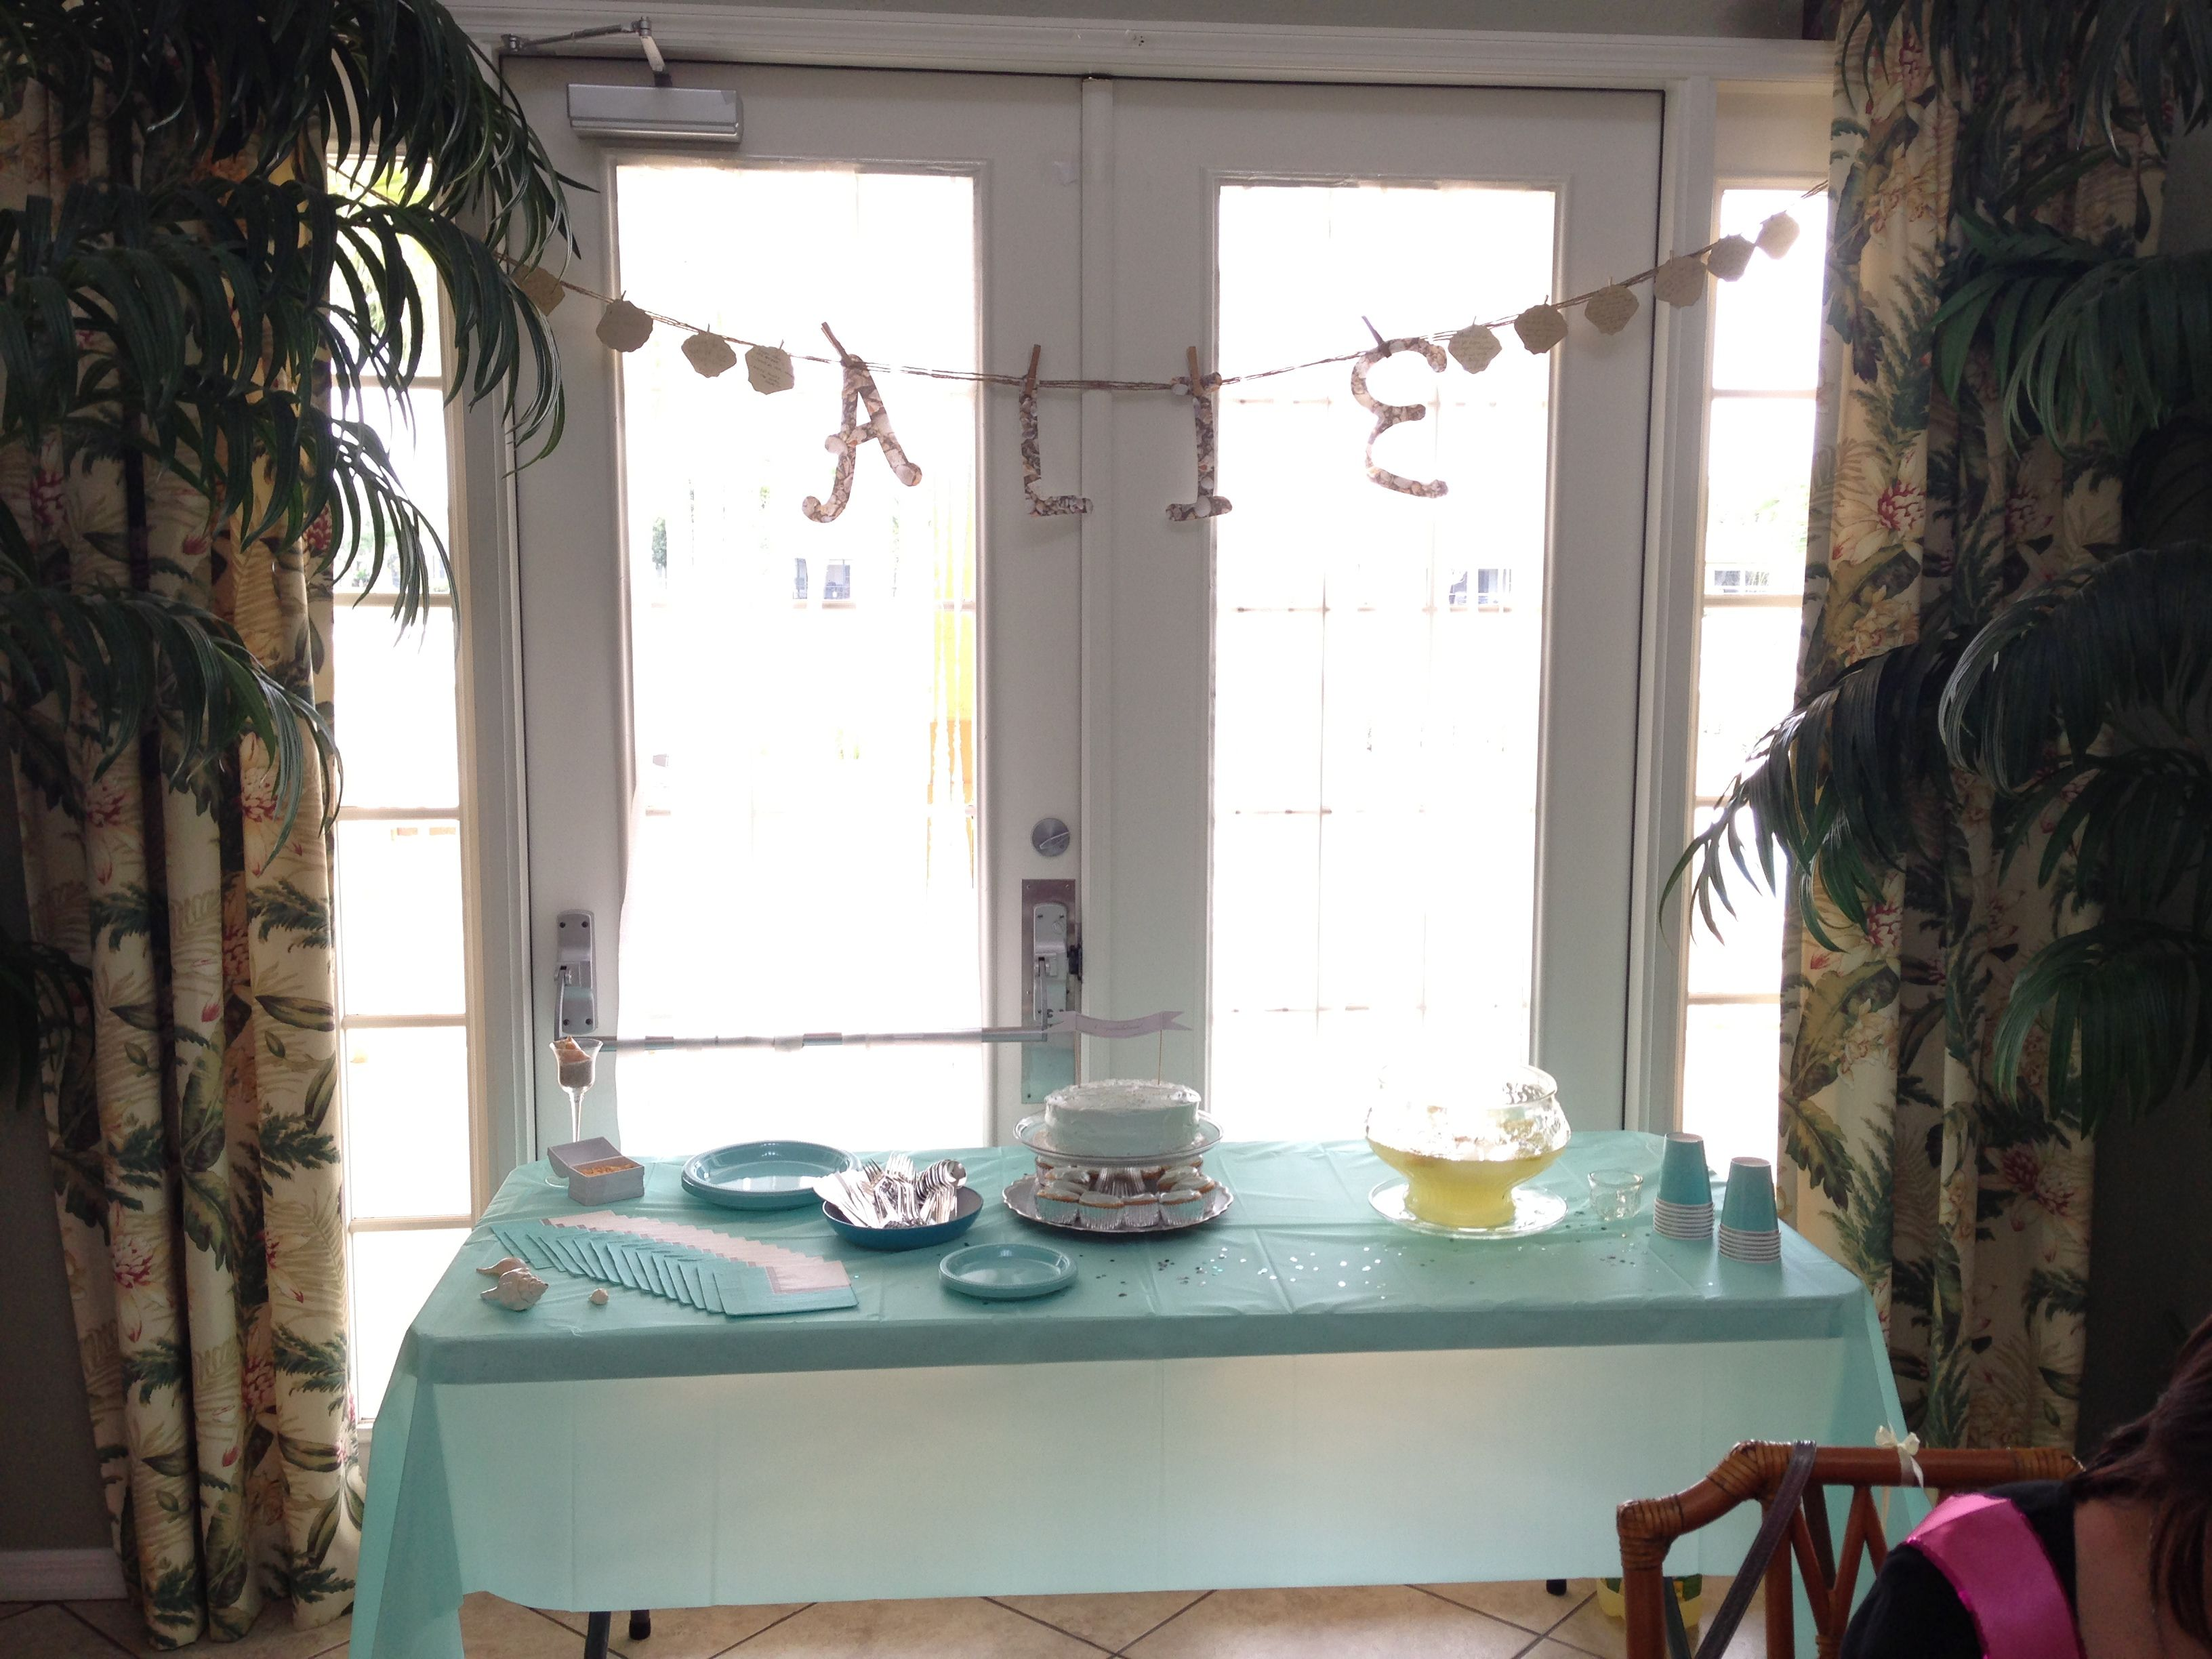 cake & lemonade at table - beach theme bridal shower .. shell paper name banner w/shell cut out wishes from guests